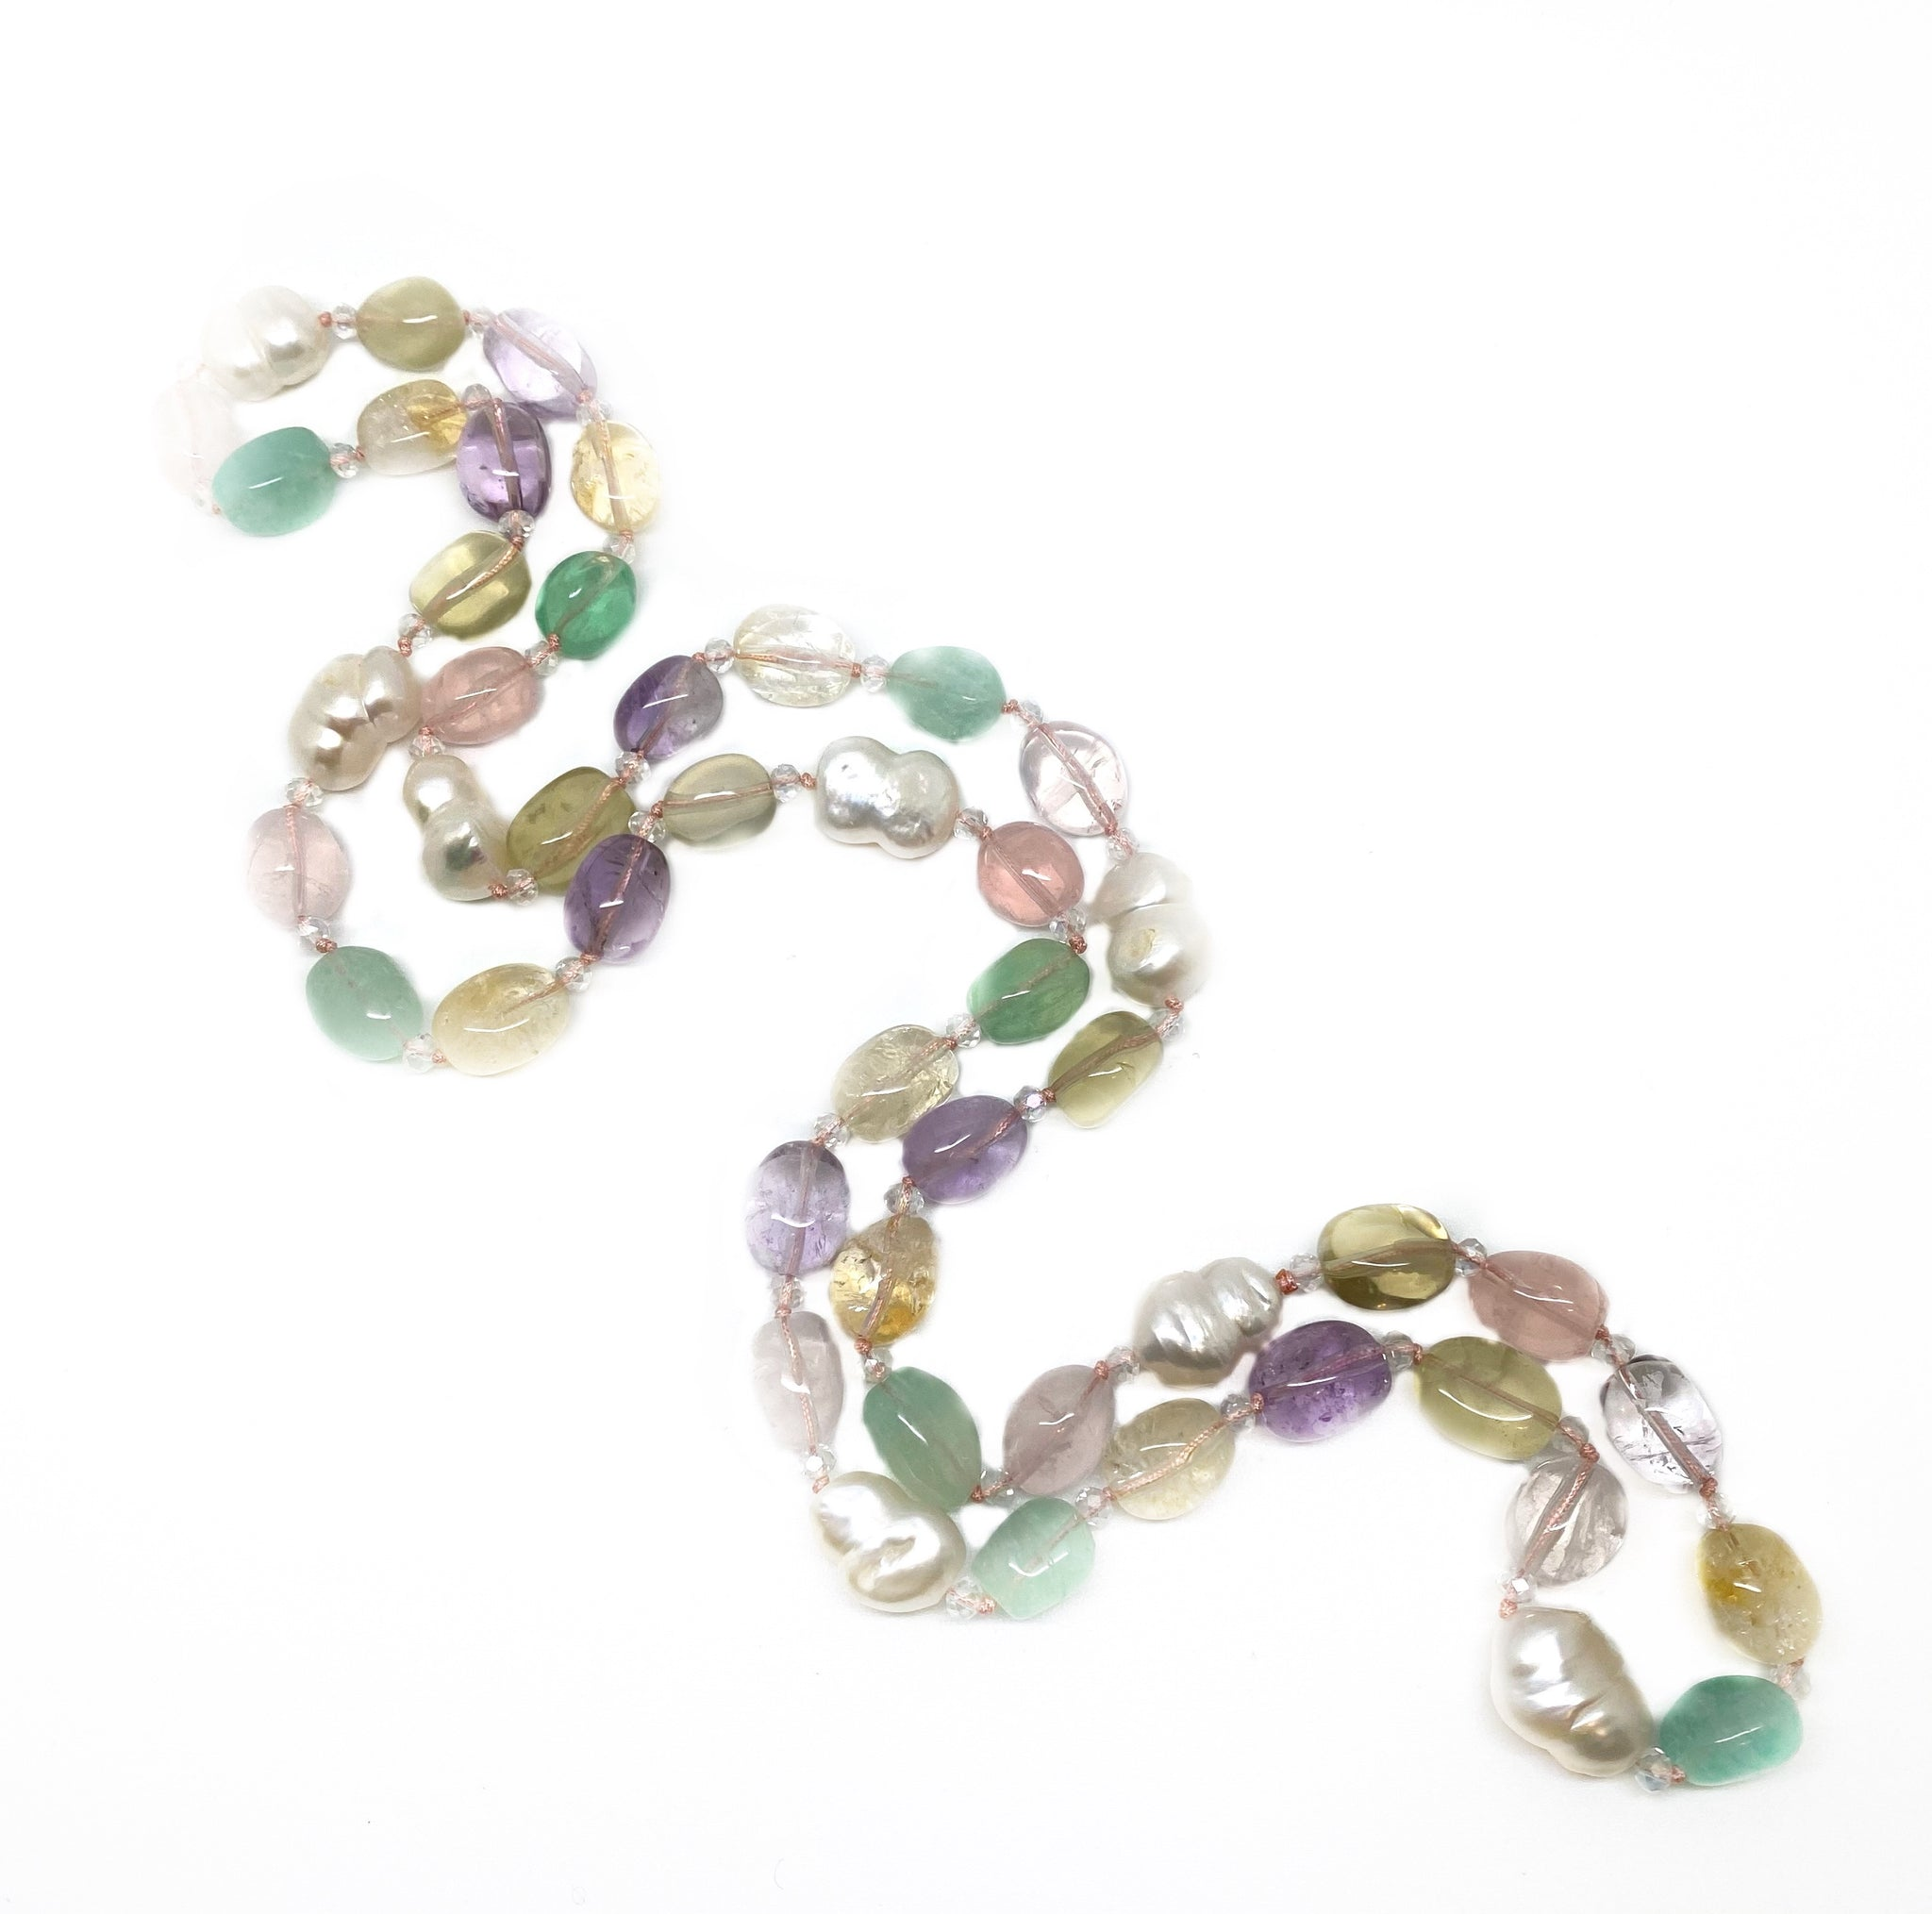 NEW - Mixed gemstone and Baroque pearl necklace